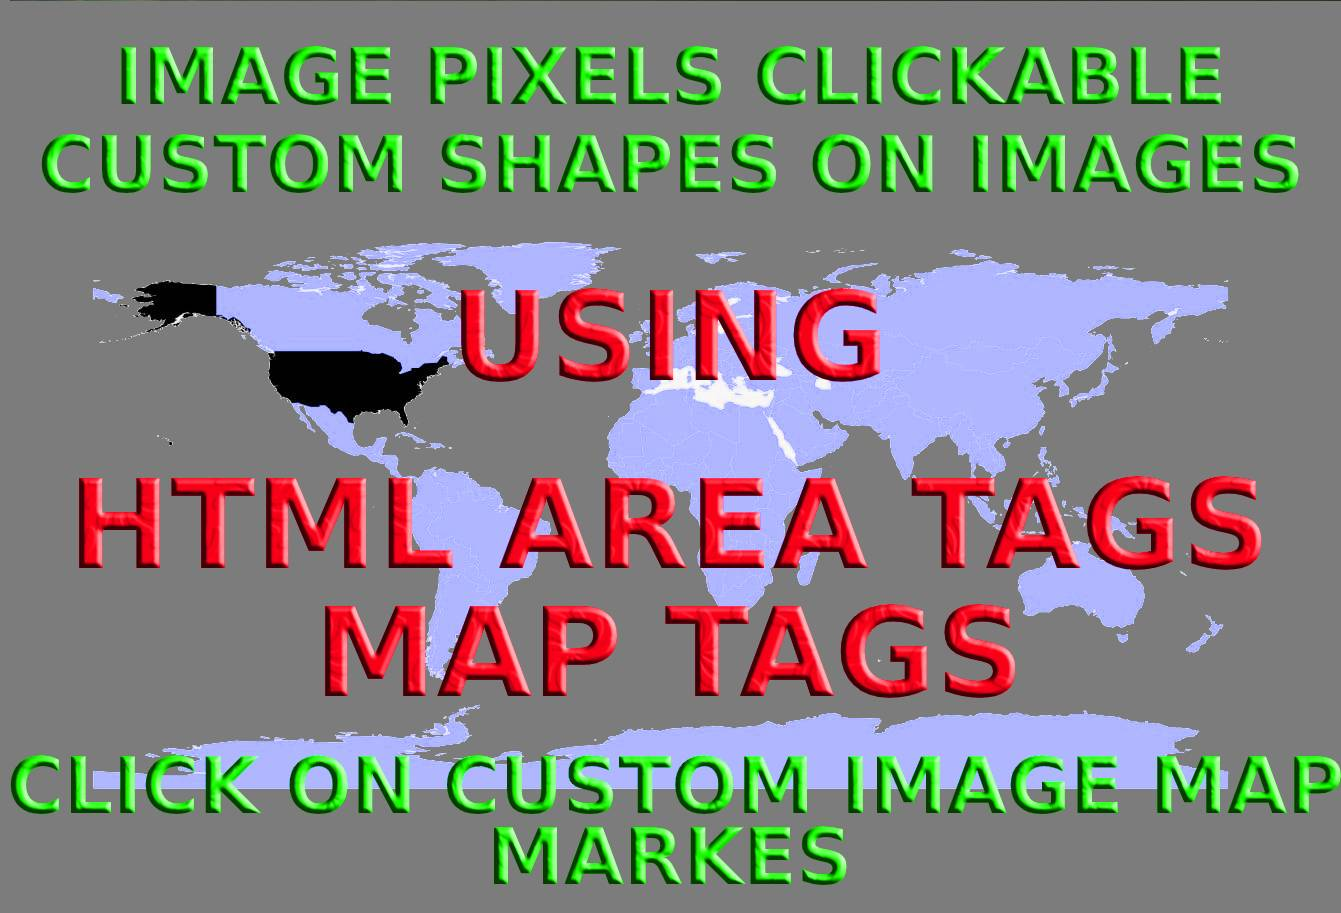 How to make images specific points clickable in HTML?